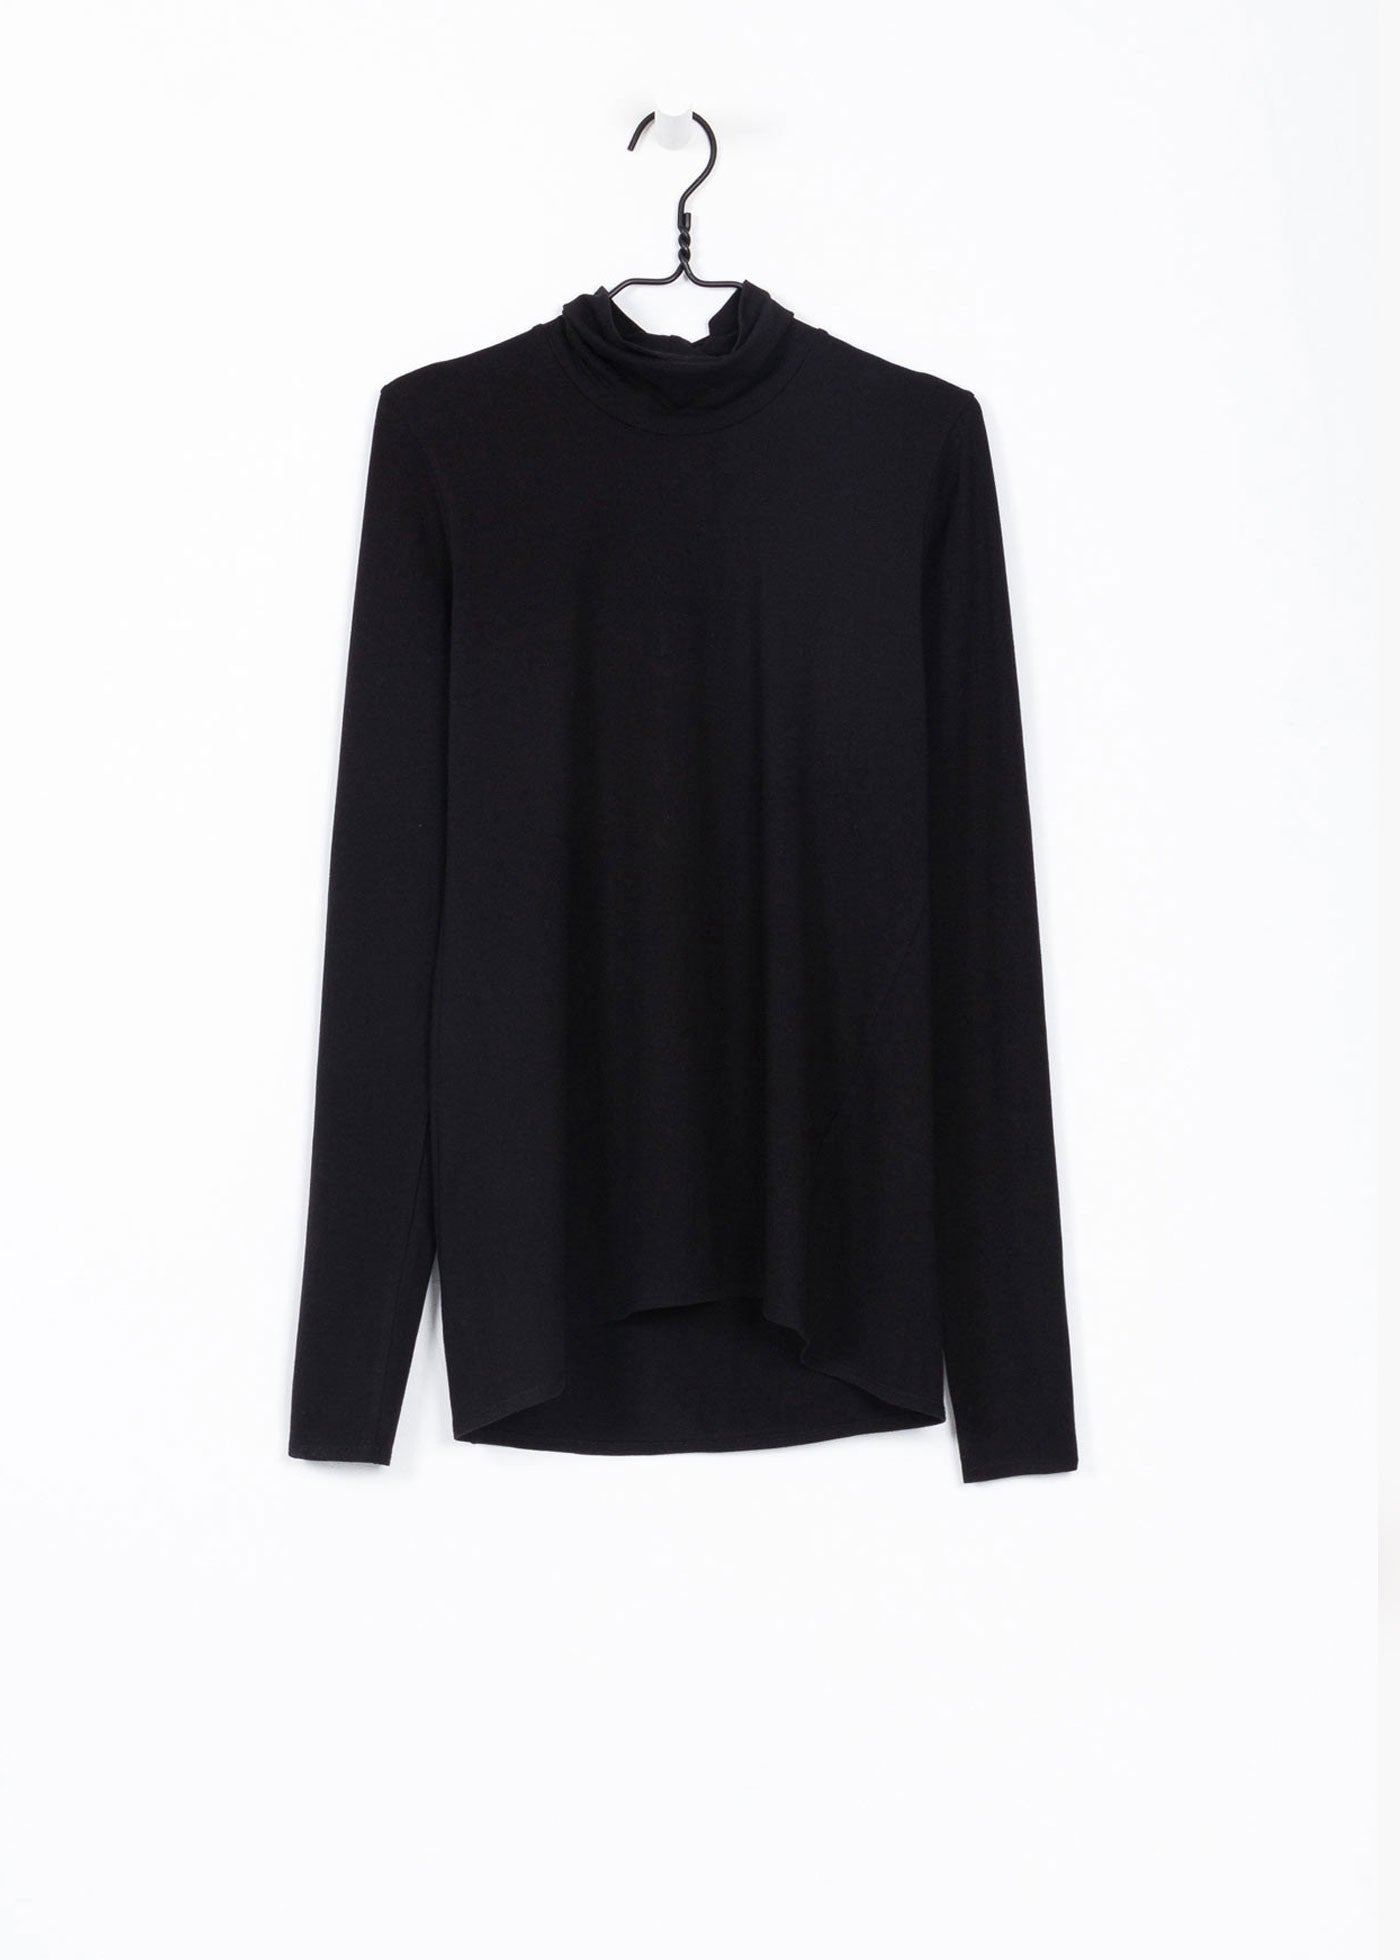 Kowtow Black Turtle Neck Top — New Classics Studios